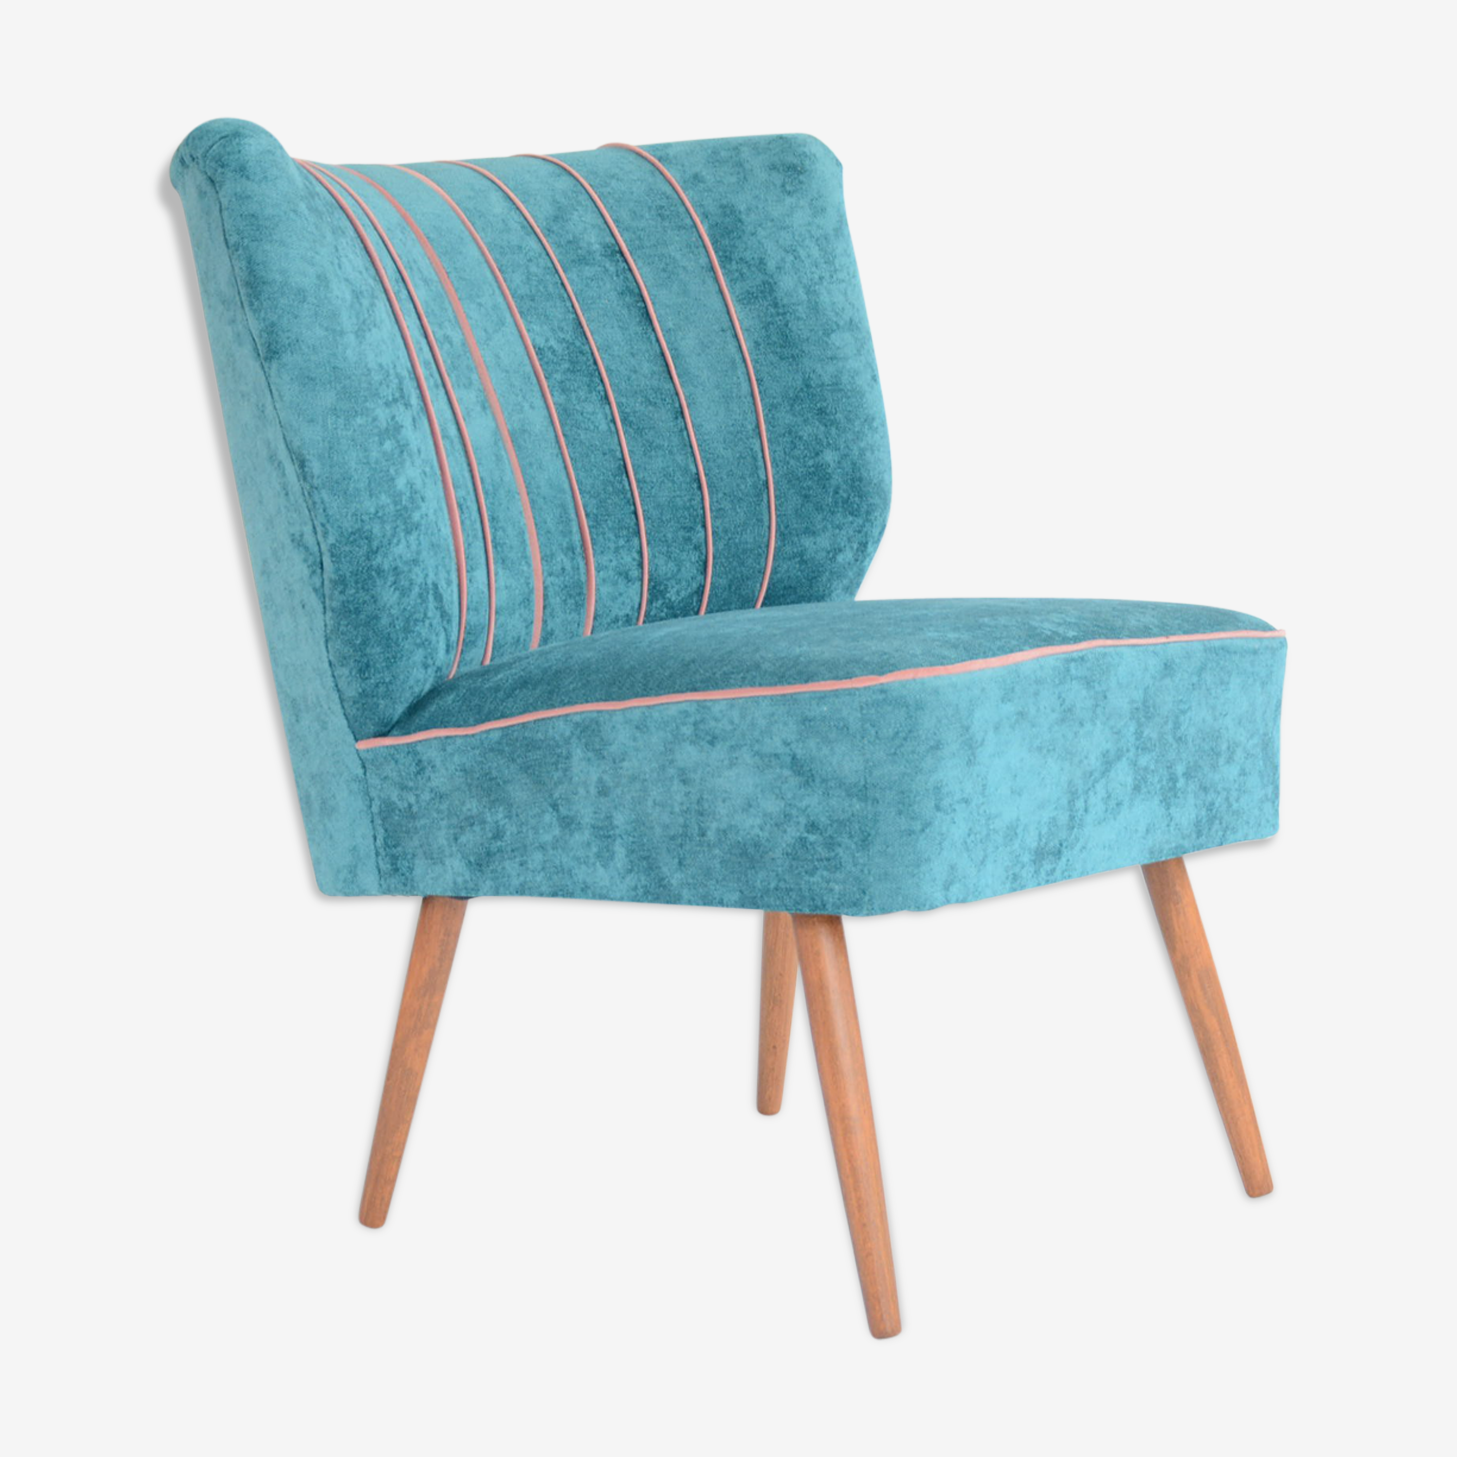 Blue armchairs